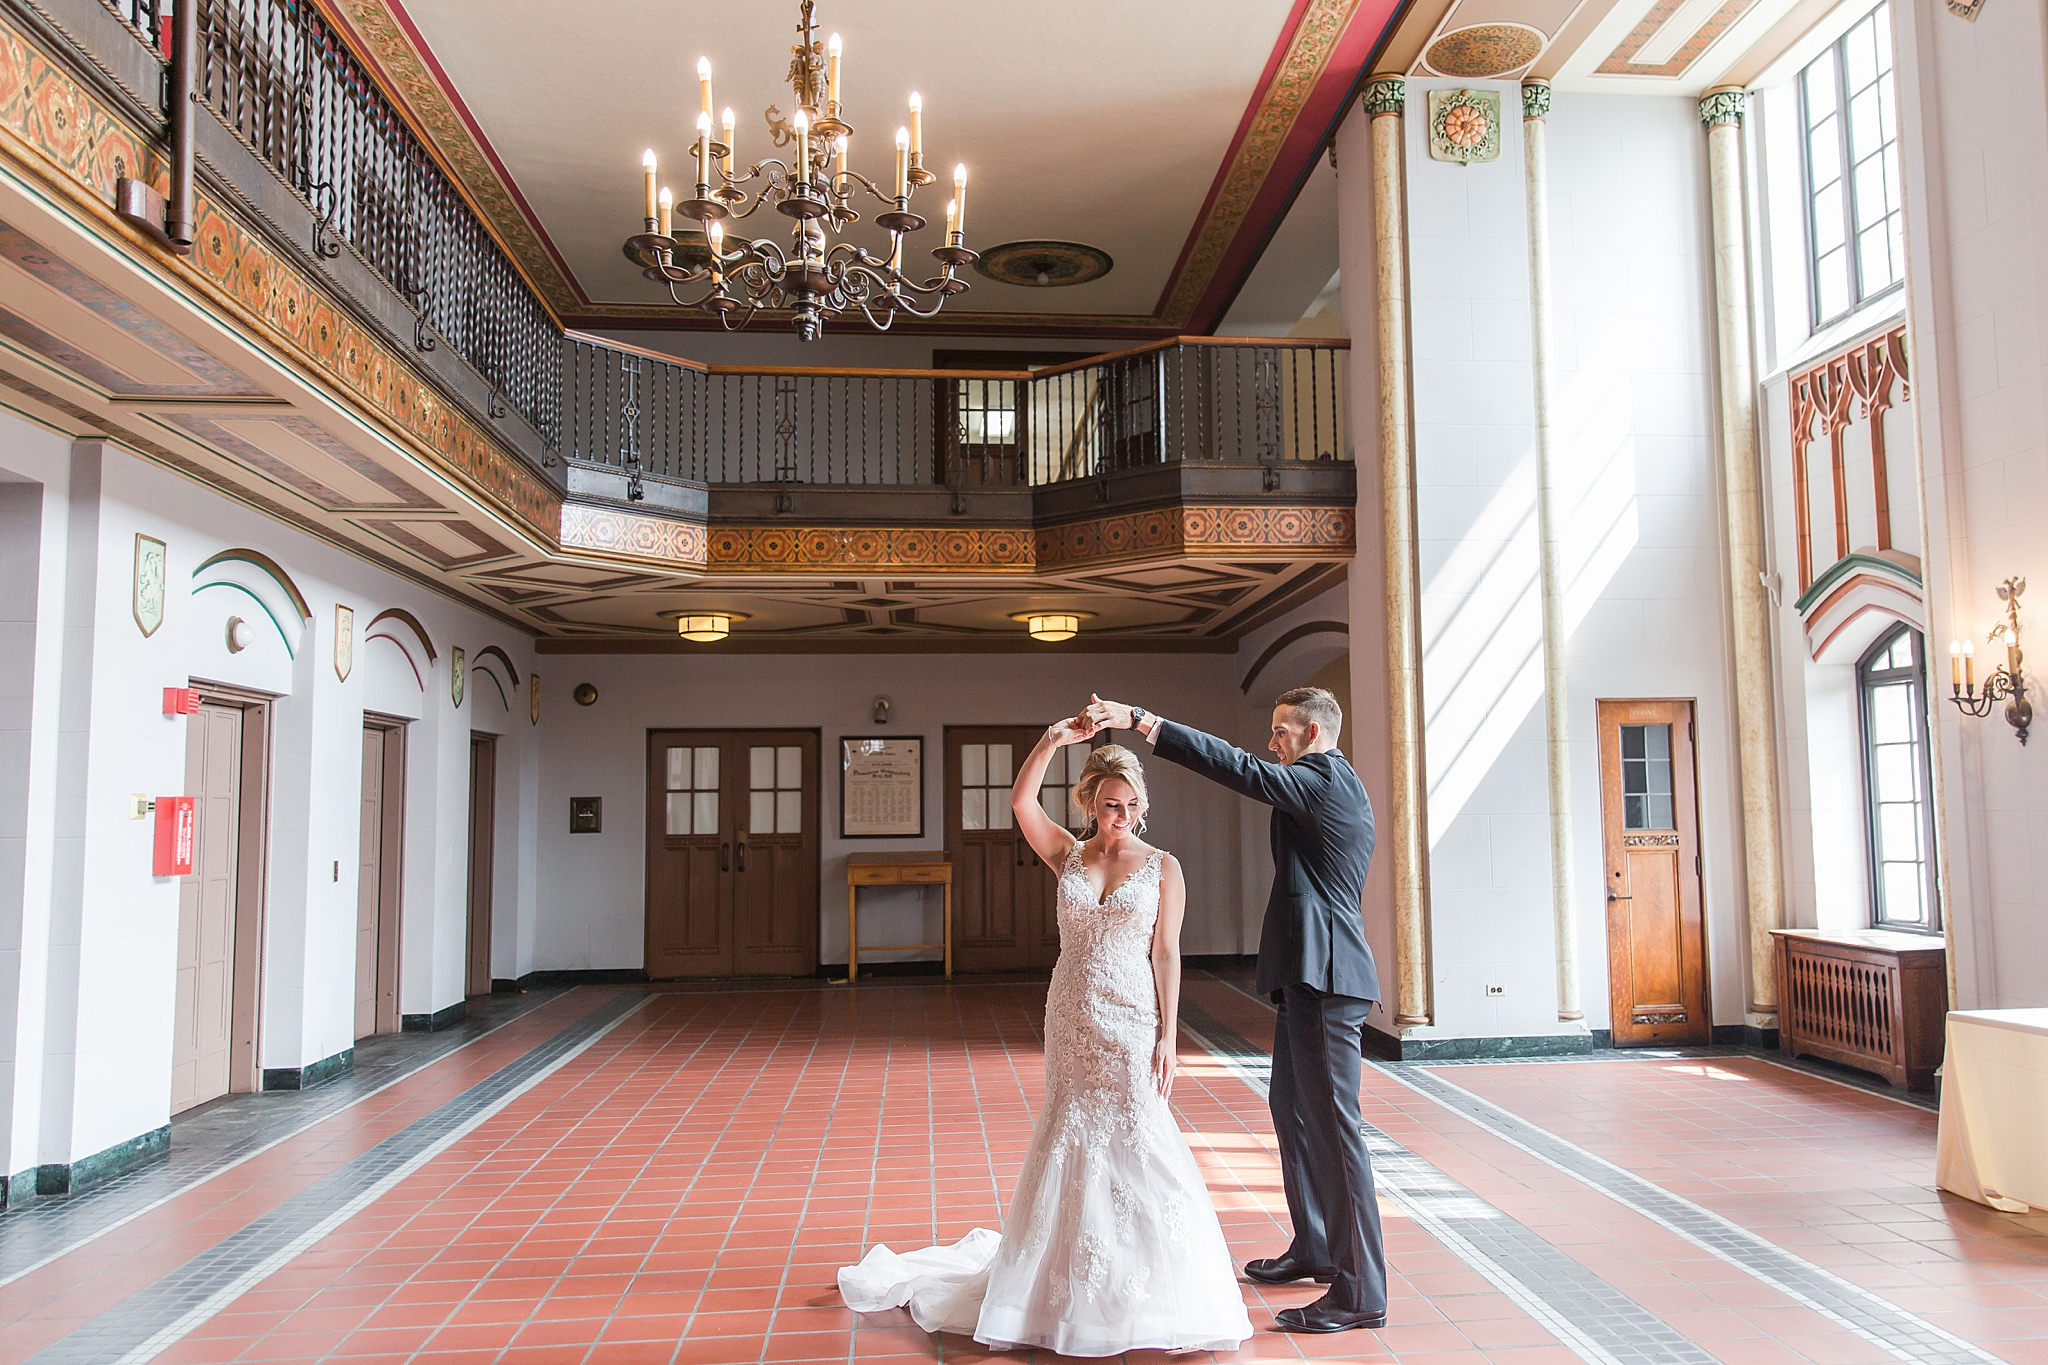 joyful-romantic-modern-laid-back-wedding-photography-in-detroit-ann-arbor-northern-mi-and-chicago-by-courtney-carolyn-photography_0001.jpg